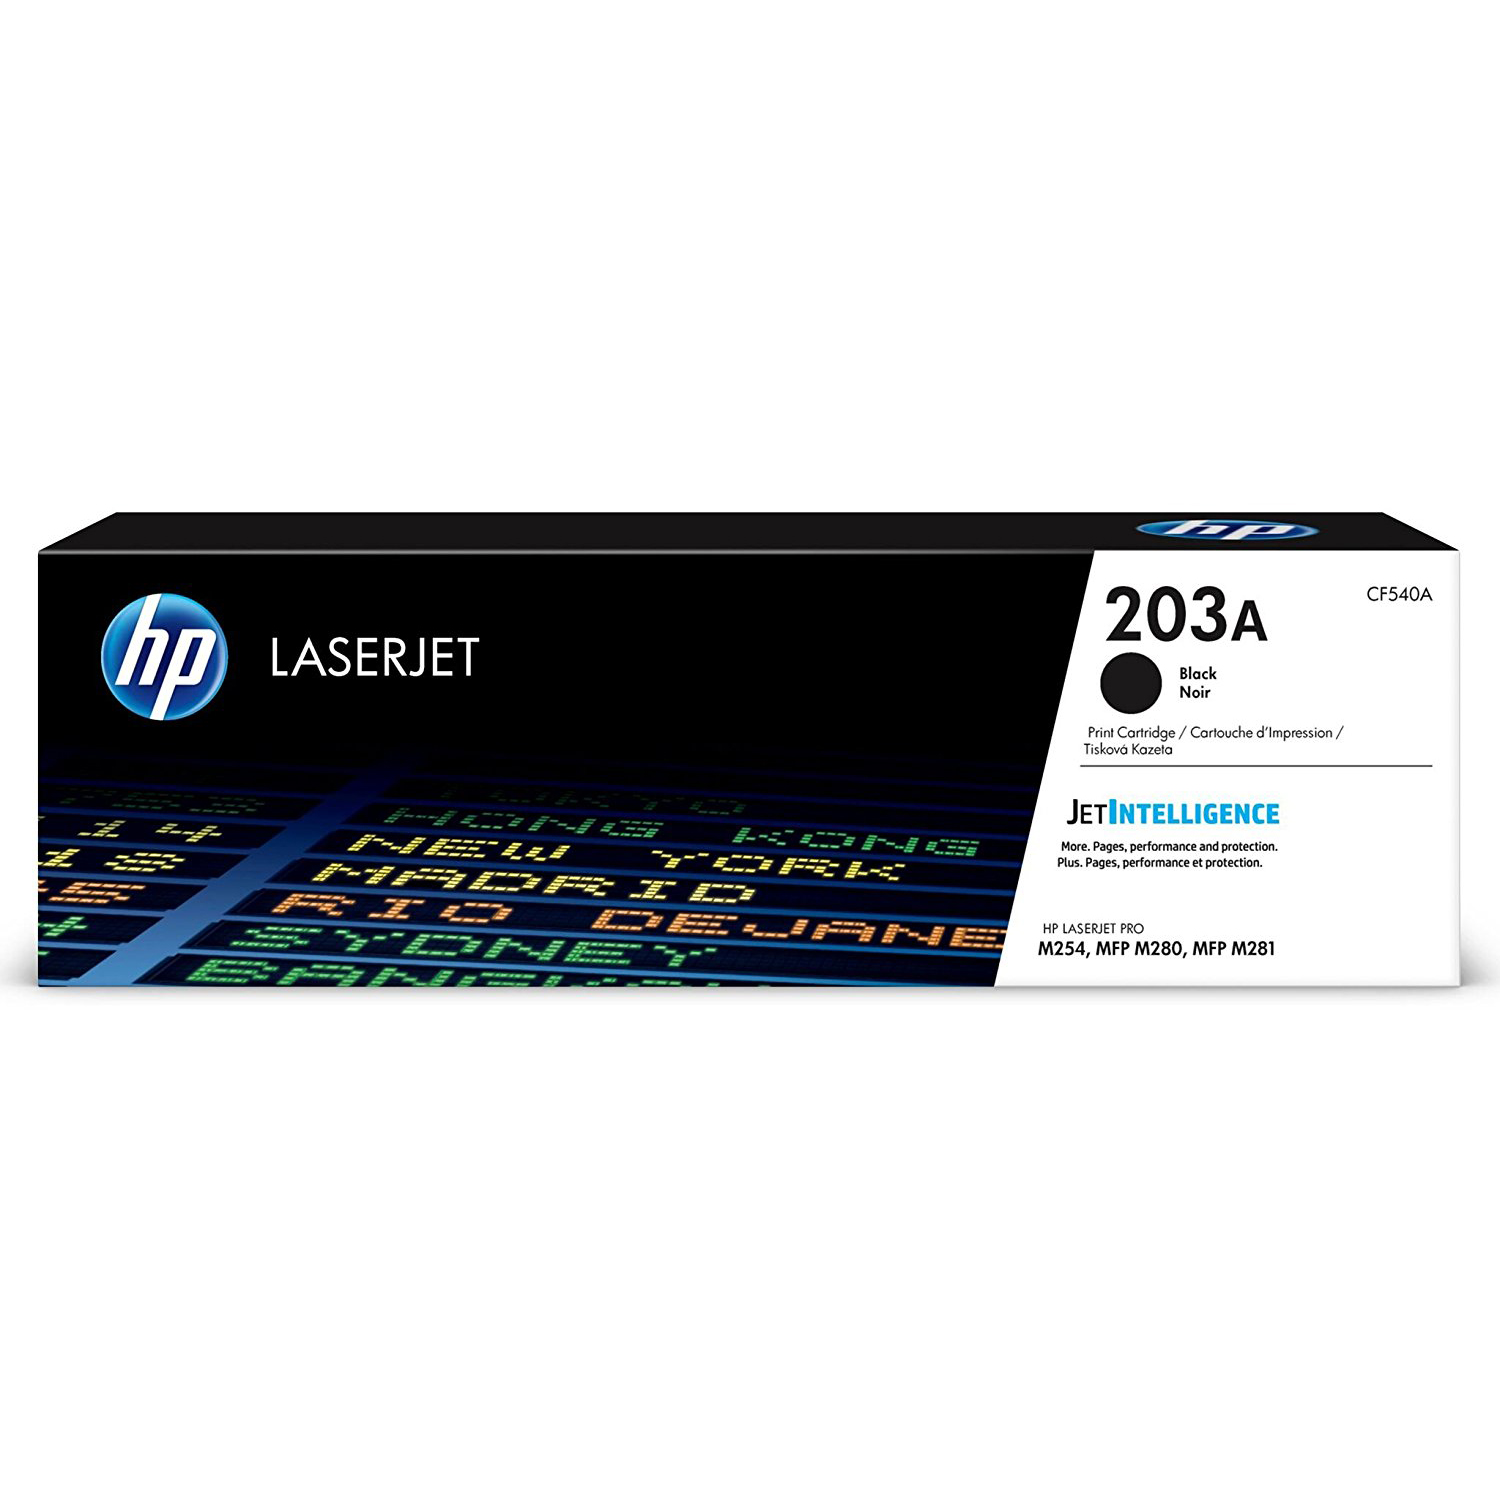 HP 203A (CF540A) Laserjet Toner Cartridge - Black